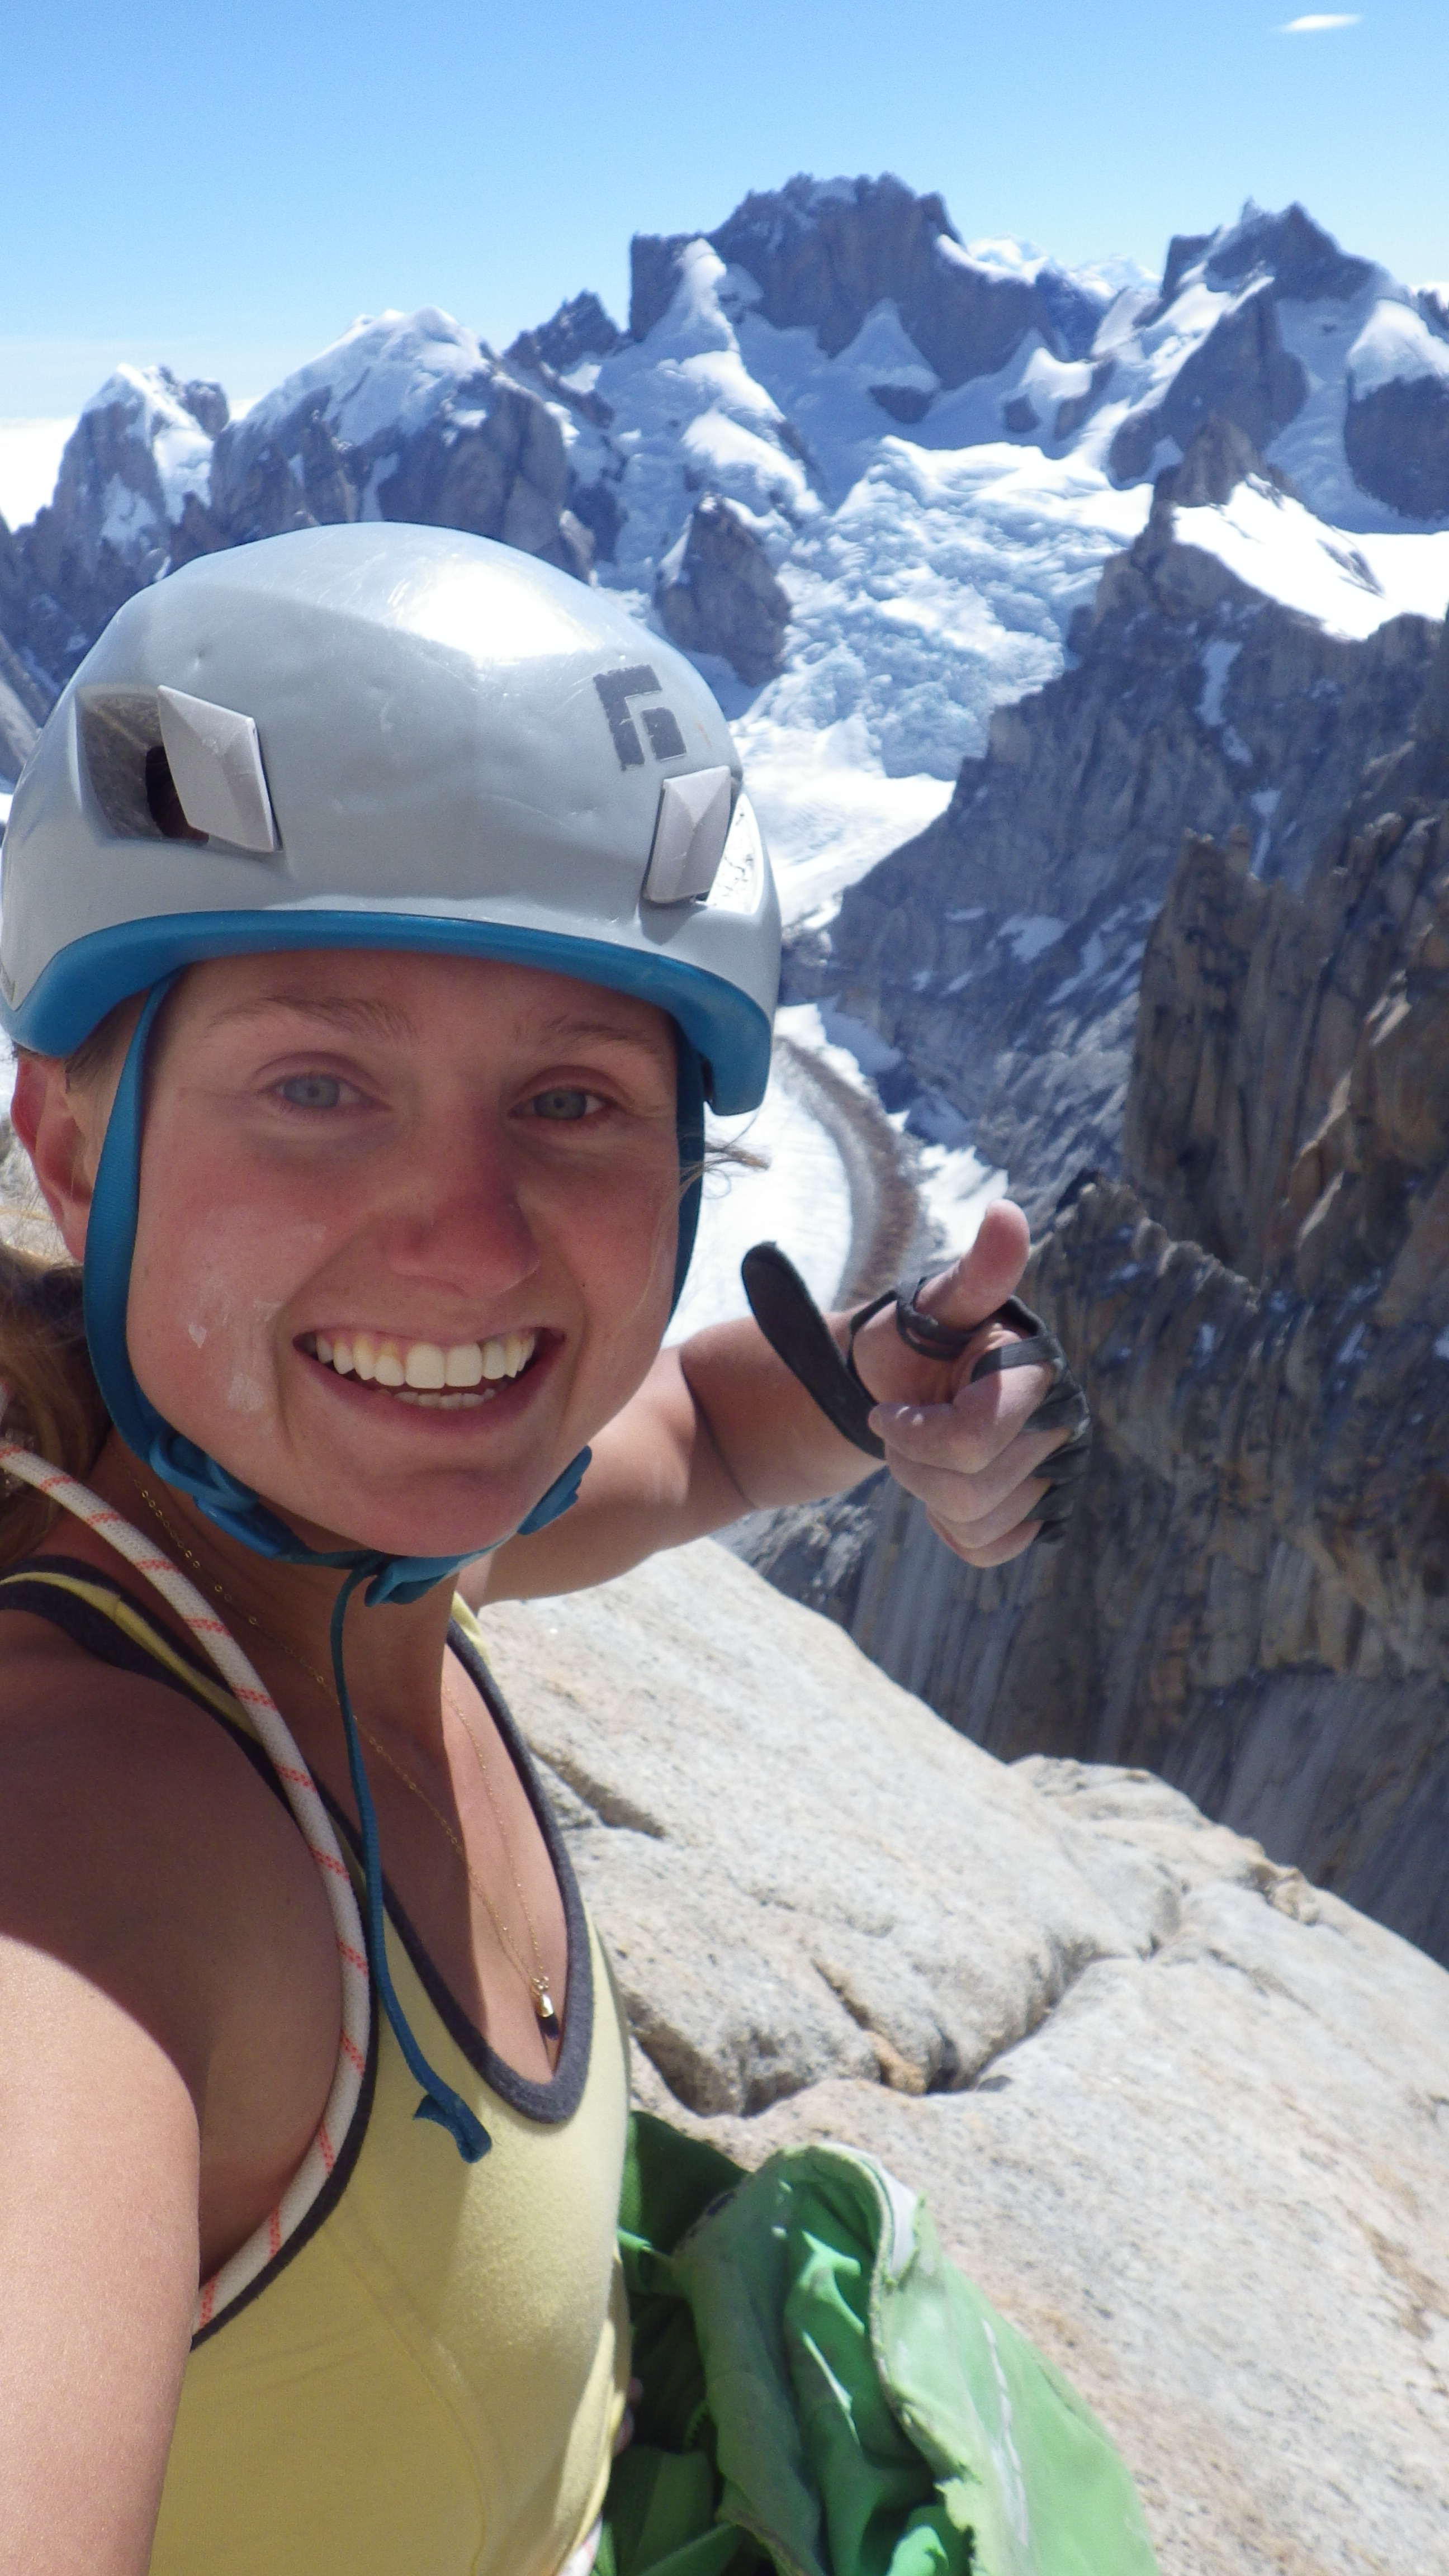 Brette Harrington takes a selfie near the top of Aguja Saint-Exupery on Chiaro di Luna (5.11a). Photo courtesy of Harrington.